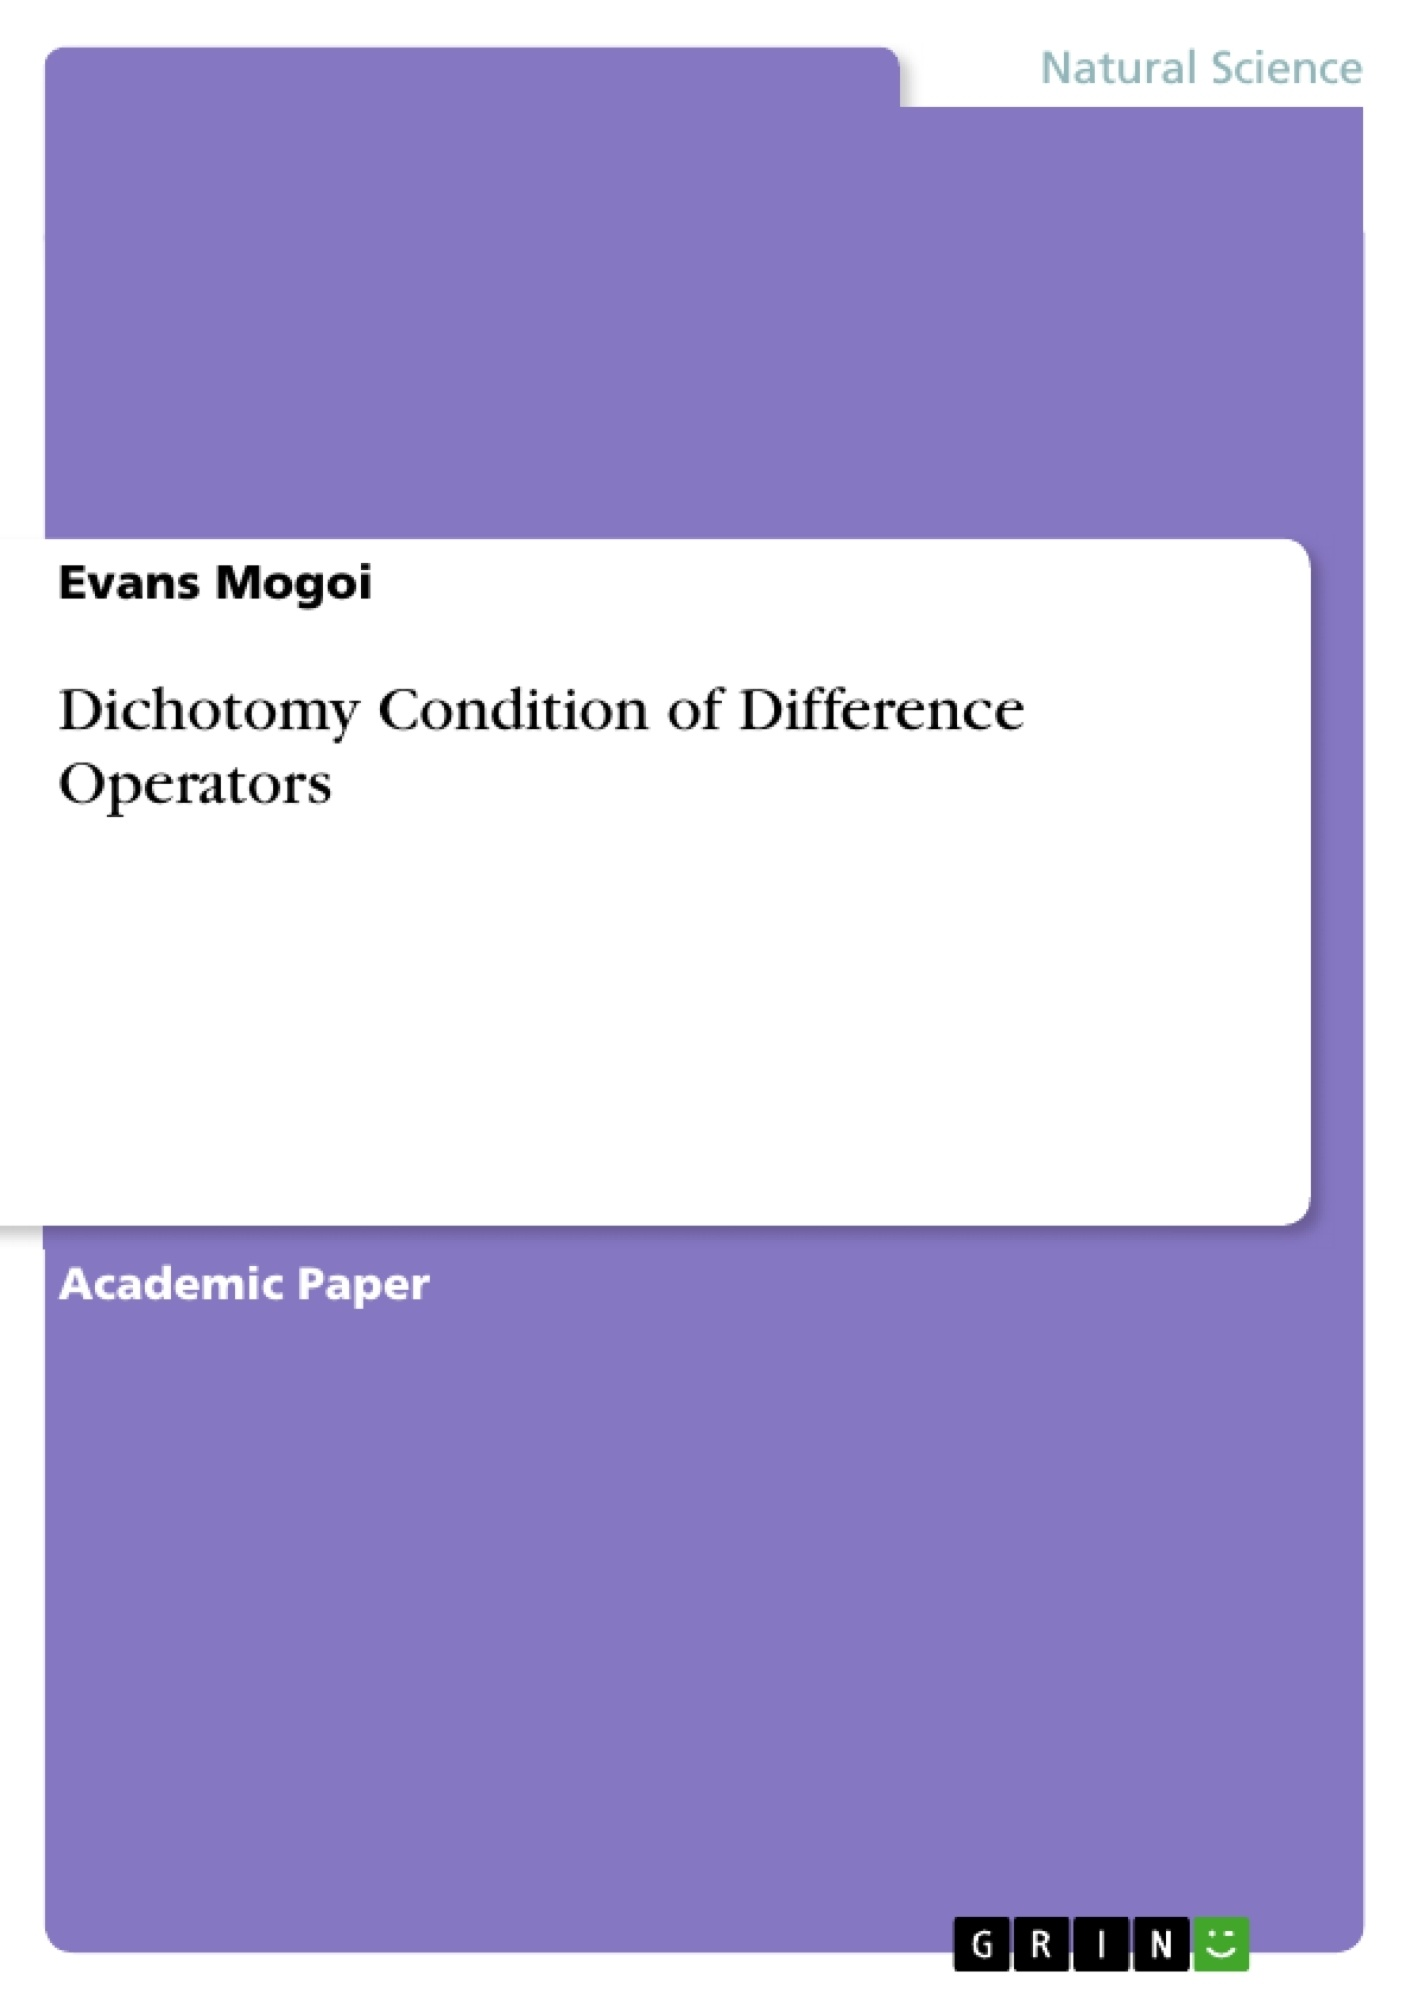 Title: Dichotomy Condition of Difference Operators